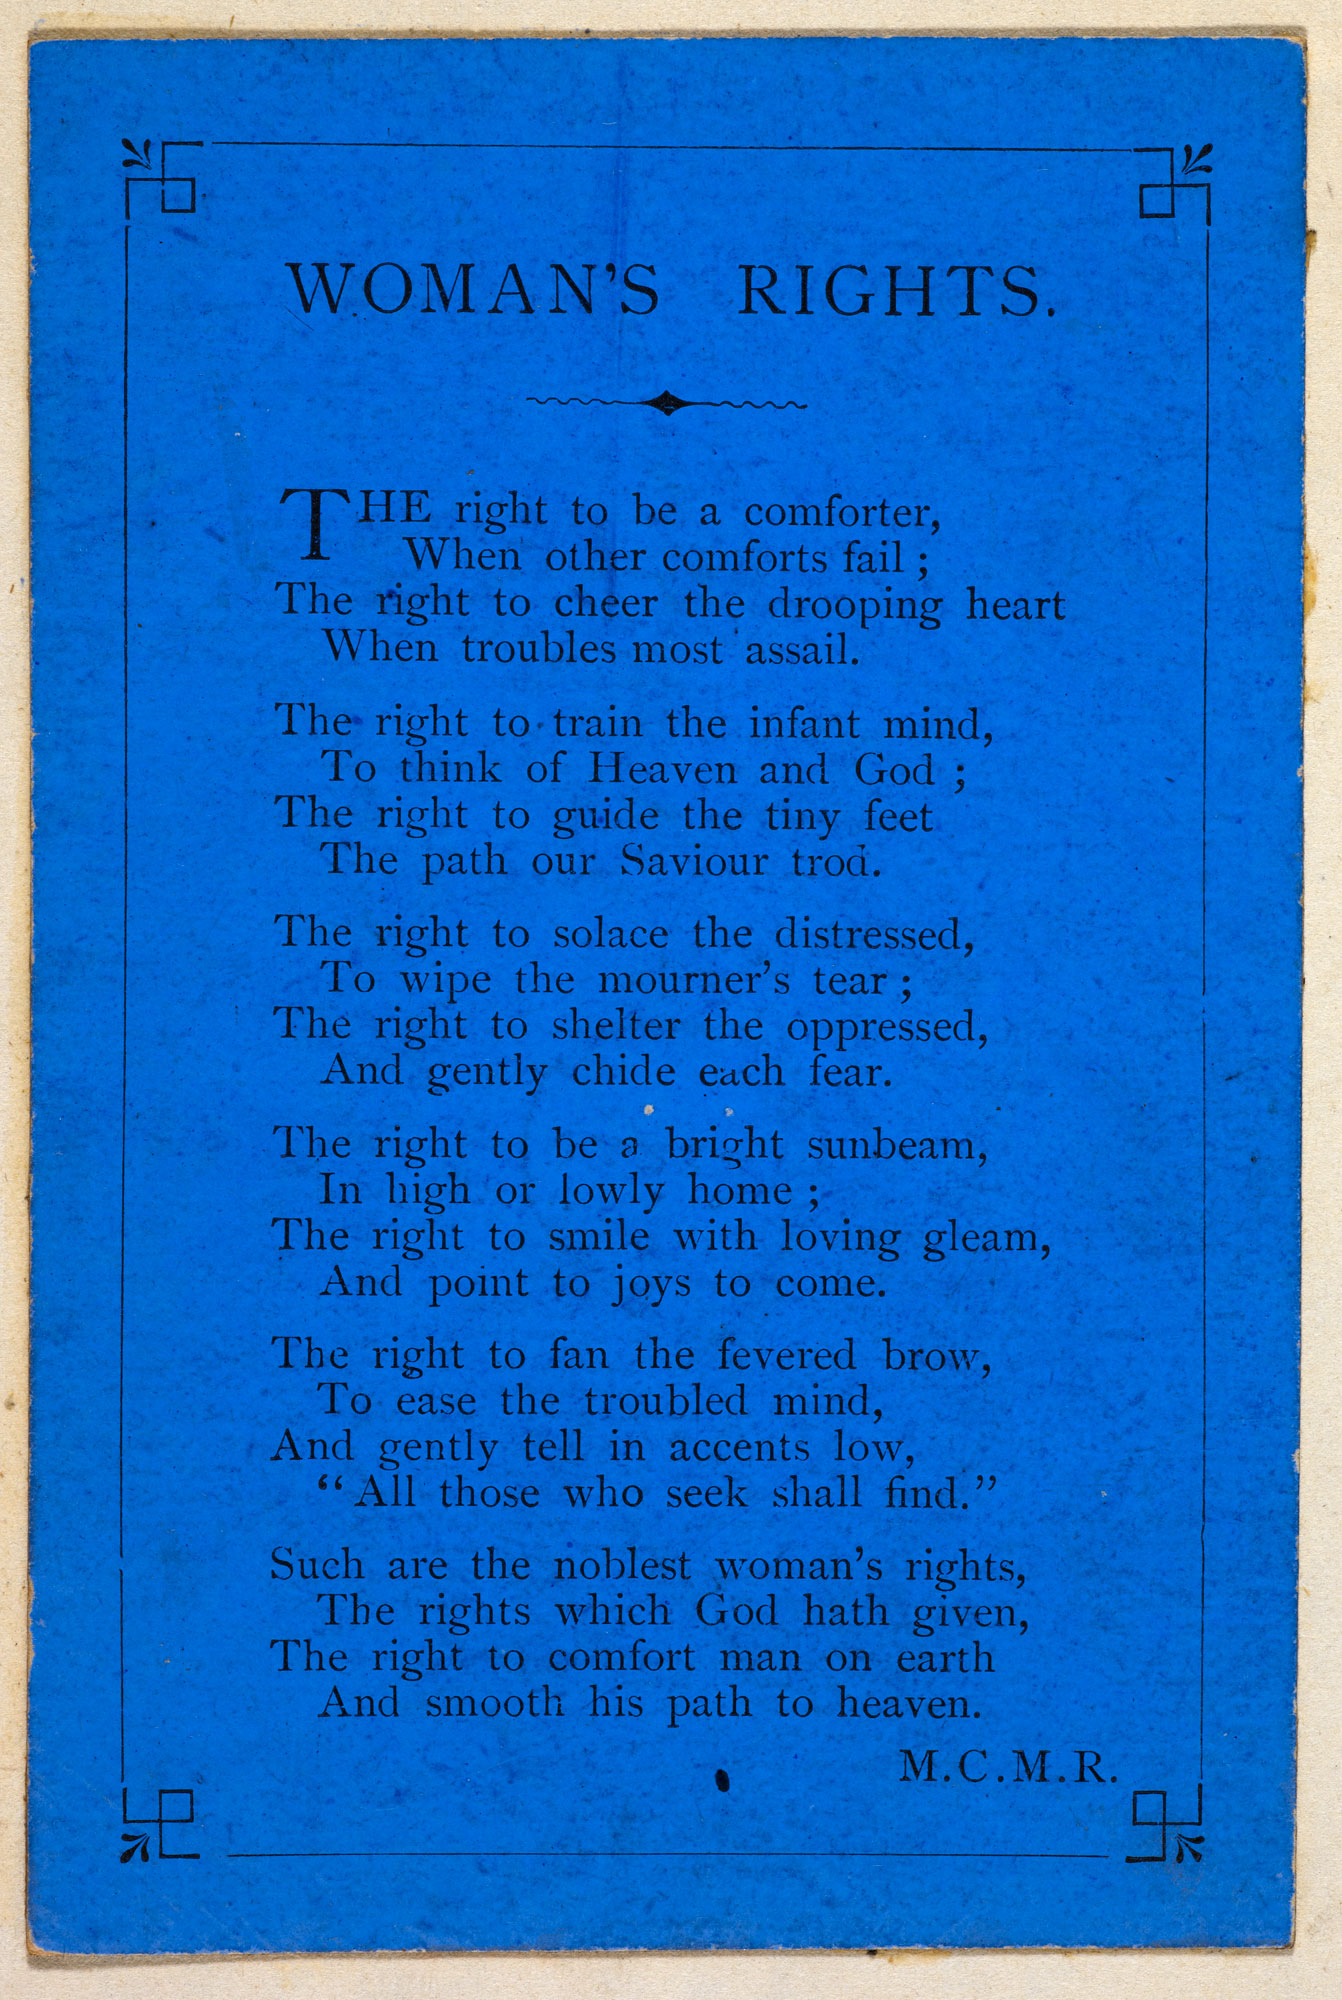 A 19th century poem on 'Woman's Rights' [page: single sheet]